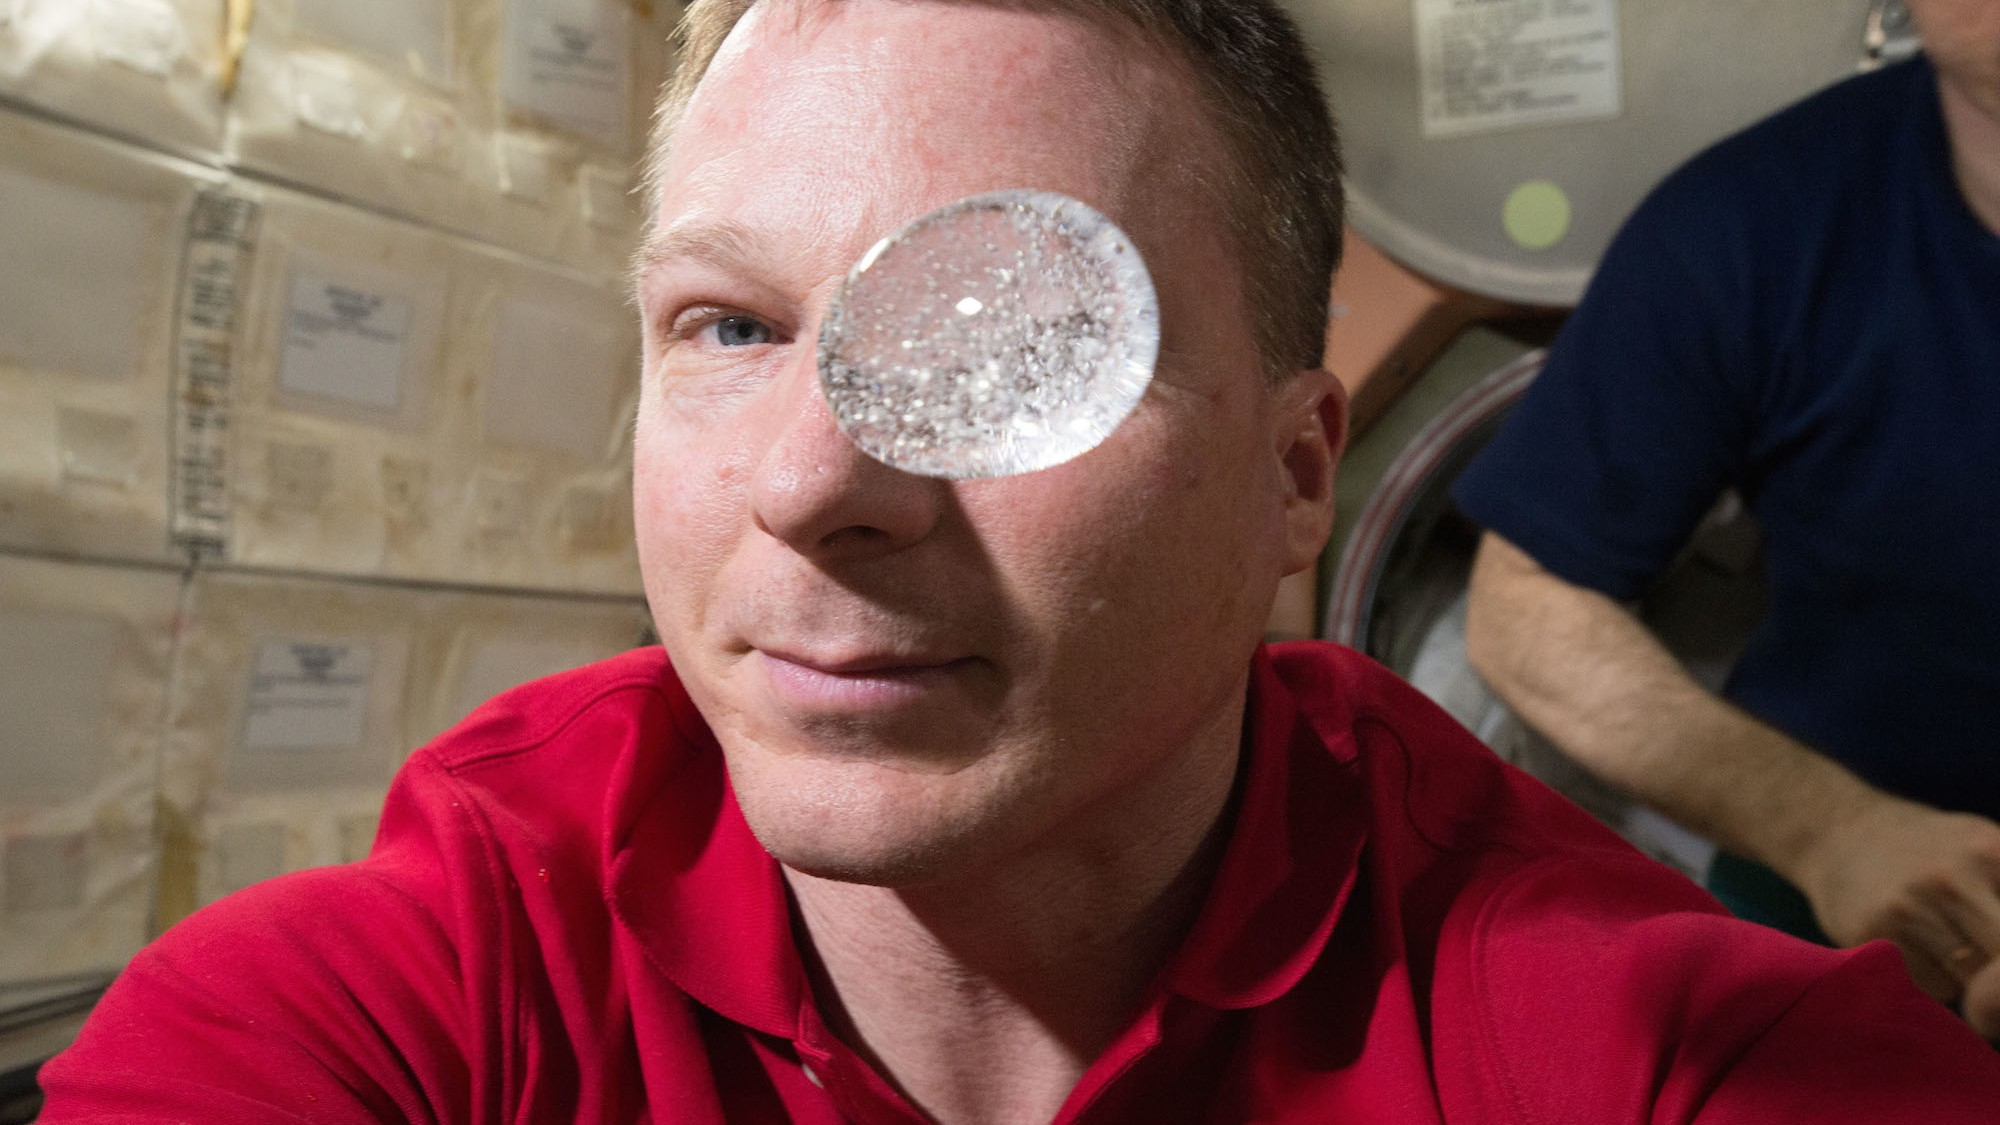 Watch This Astronaut Play With a Fizzing, Weightless Water Bubble